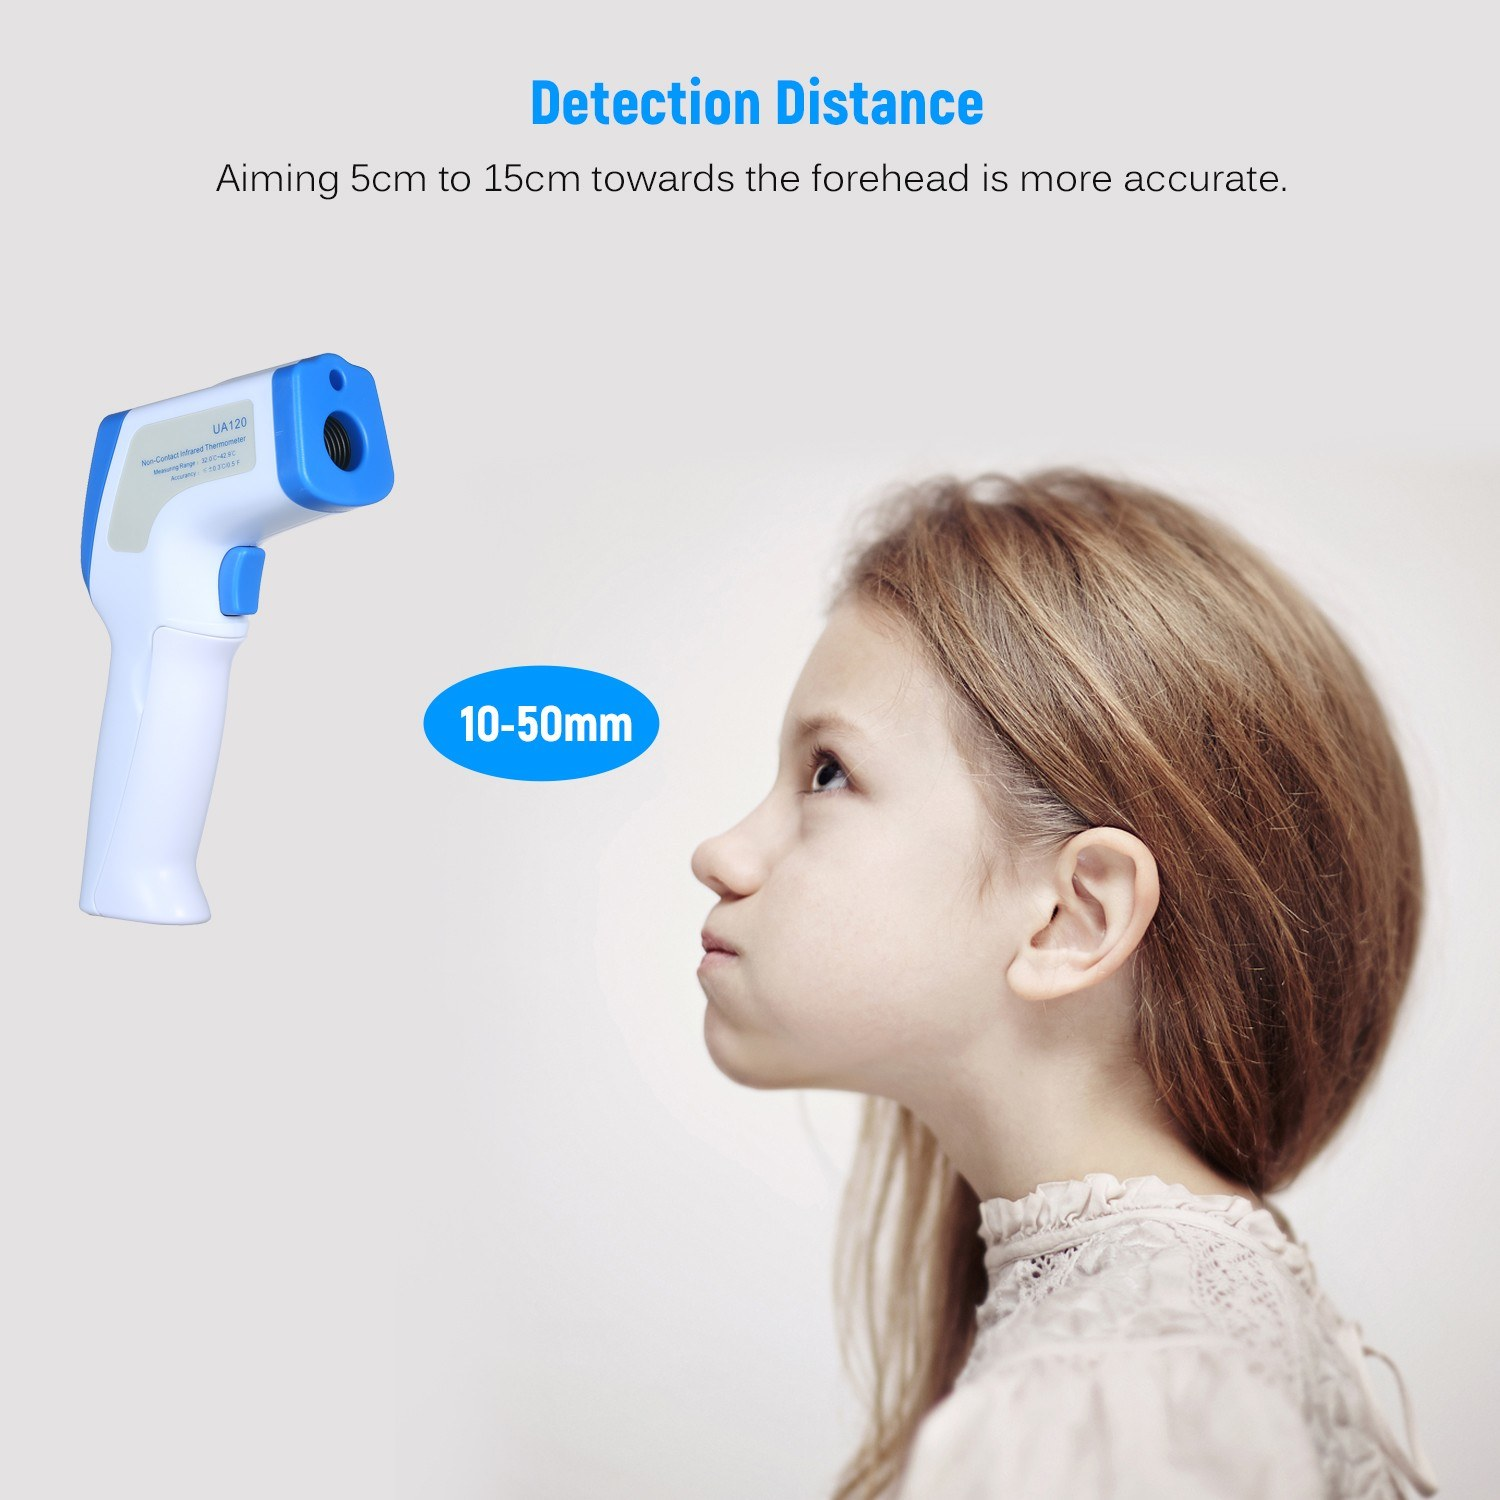 Non-contact High Accuracy Portable Infrared Thermometer - Measure Forehead / Body Temperature